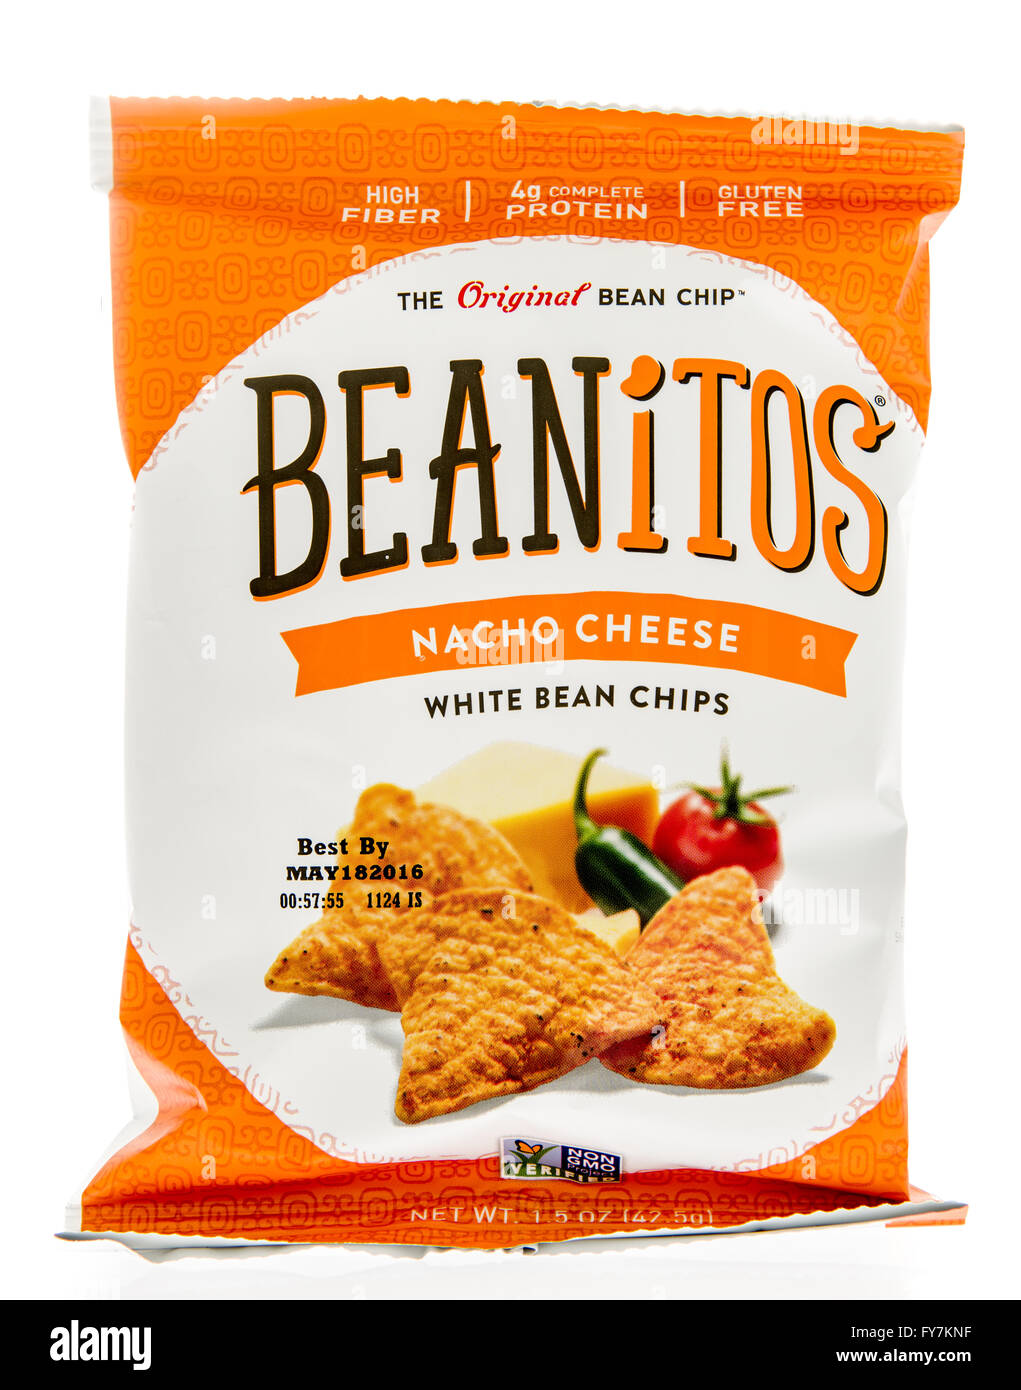 Winneconne, WI - 5 March 2016:  A bag of Beanitos white bean chips in nacho cheese flavor. - Stock Image